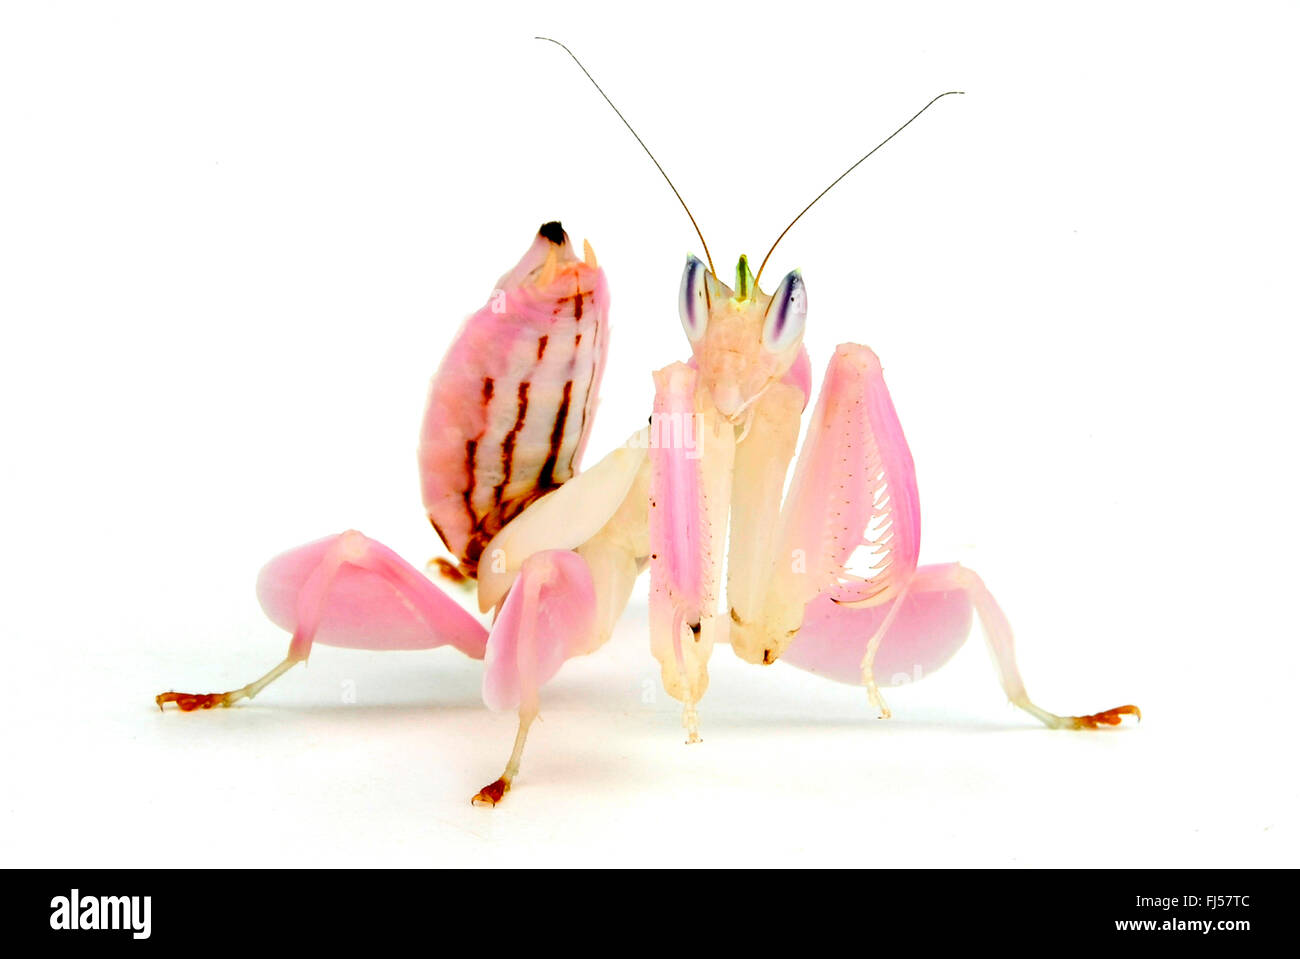 Walking flower mantis orchid mantis pink orchid mantis walking flower mantis orchid mantis pink orchid mantis hymenopus coronatus mantis mimics an orchid flower dhlflorist Image collections